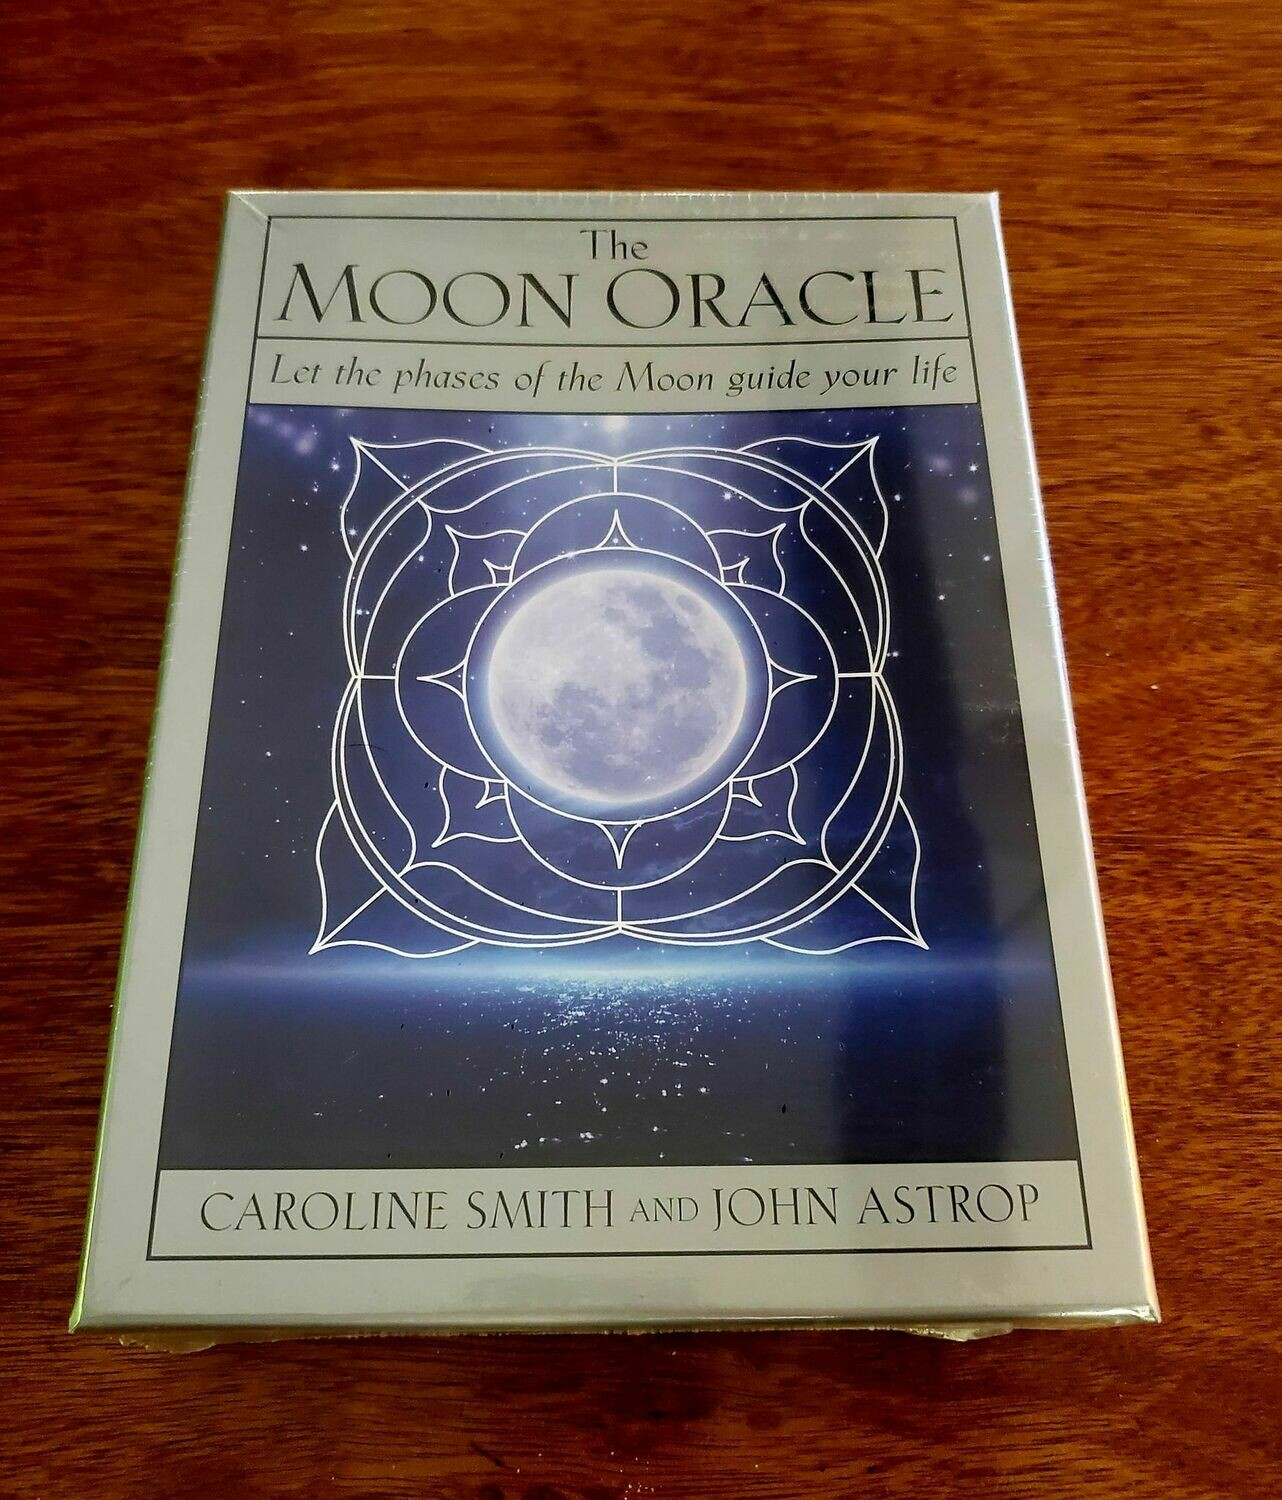 Oracle The Moon -Let the Moon phases guide you.